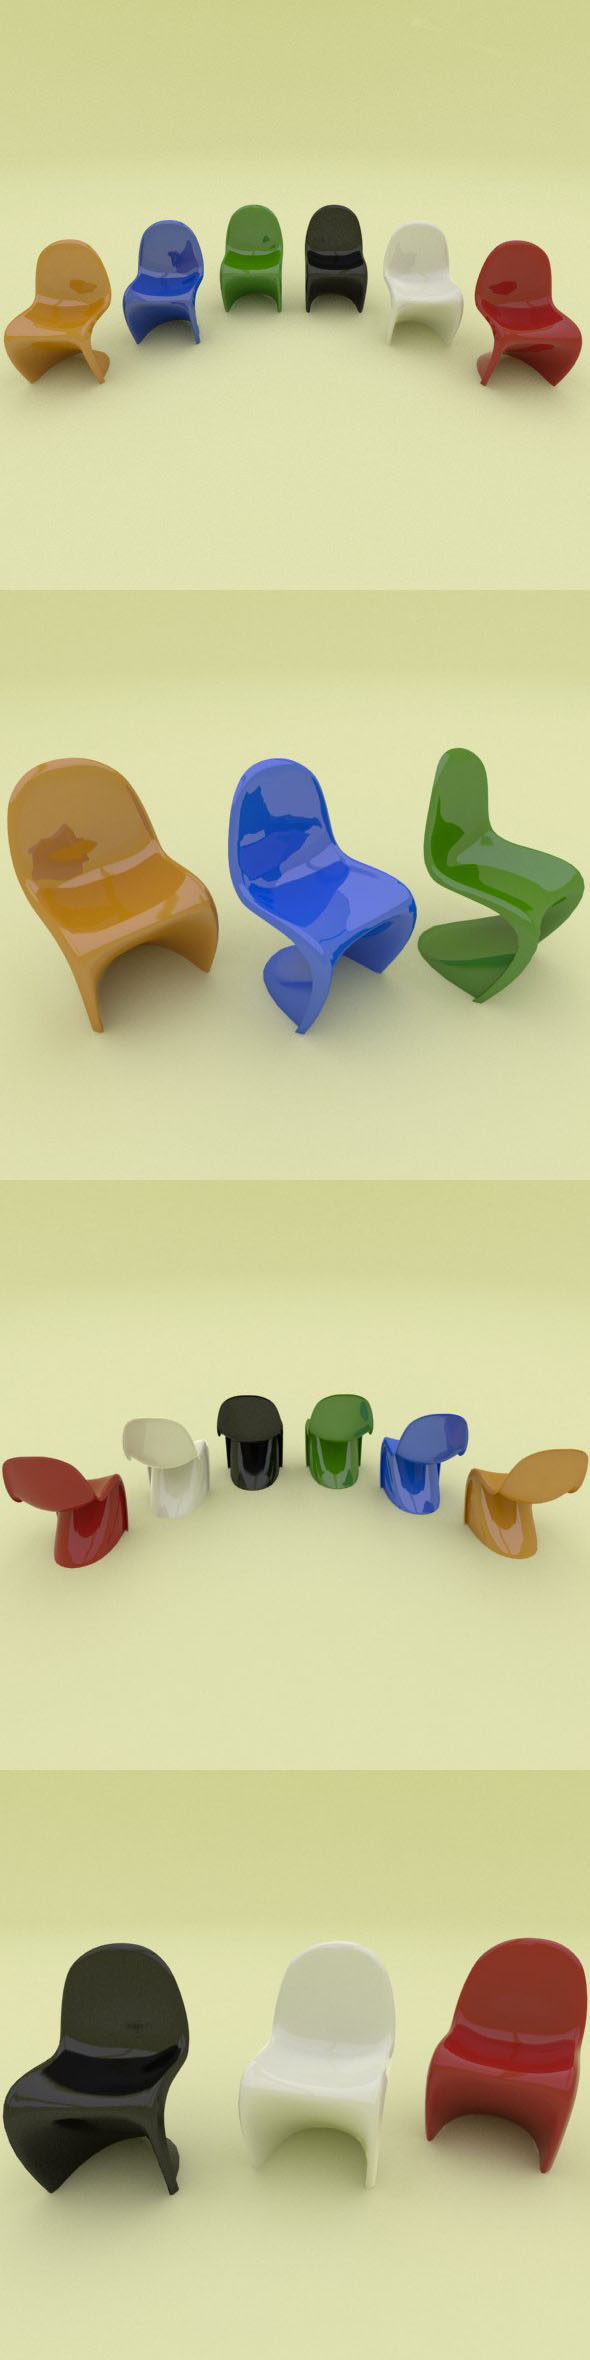 Panton plastic Chair  - 3DOcean Item for Sale